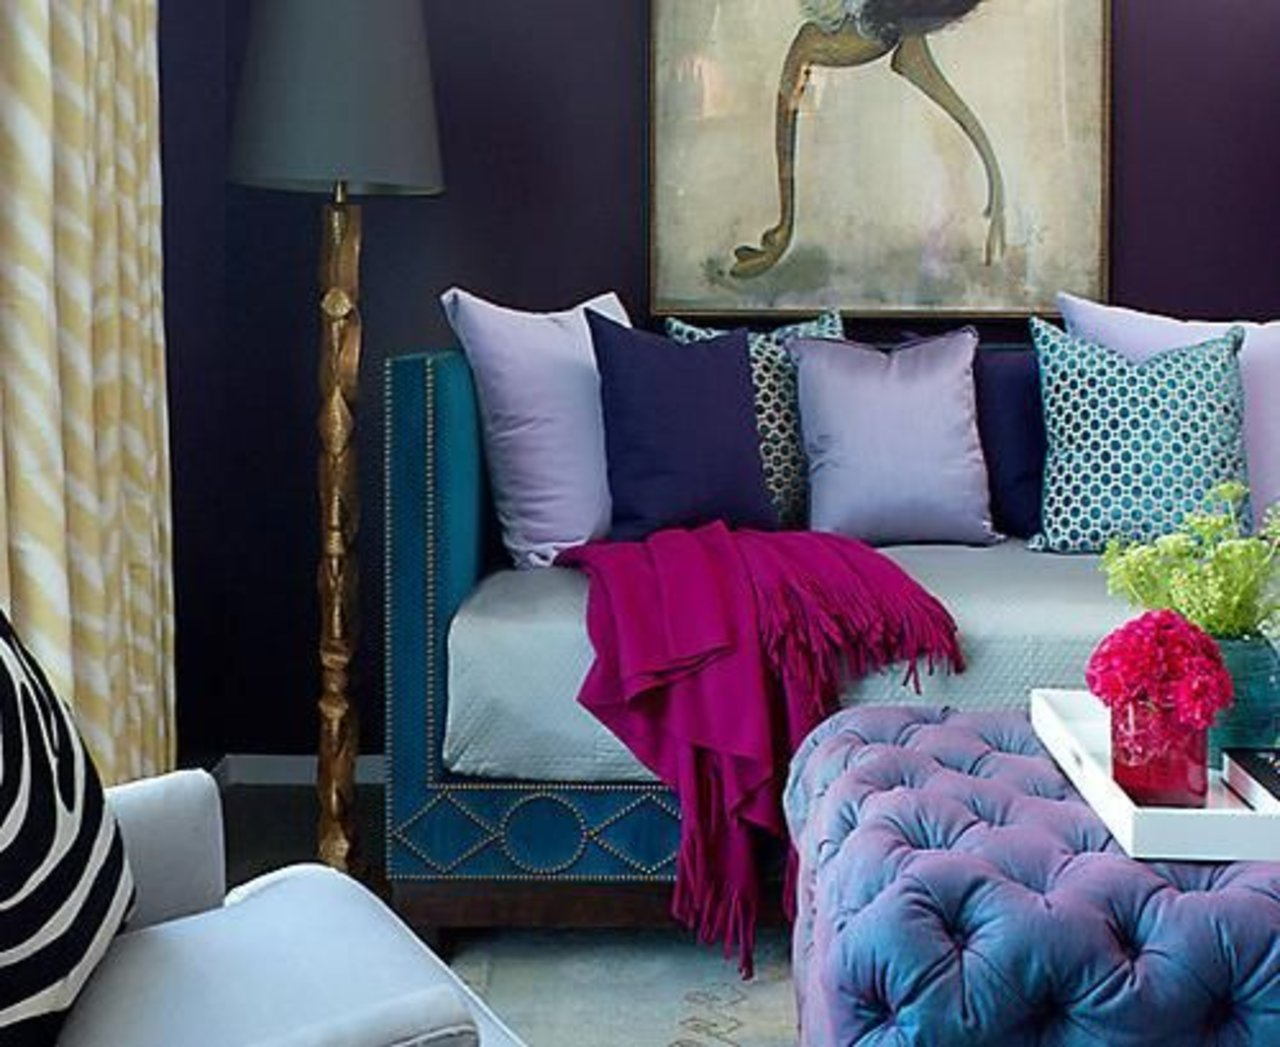 The Luxurious Feel Of Jewel Tones In Home Decorating